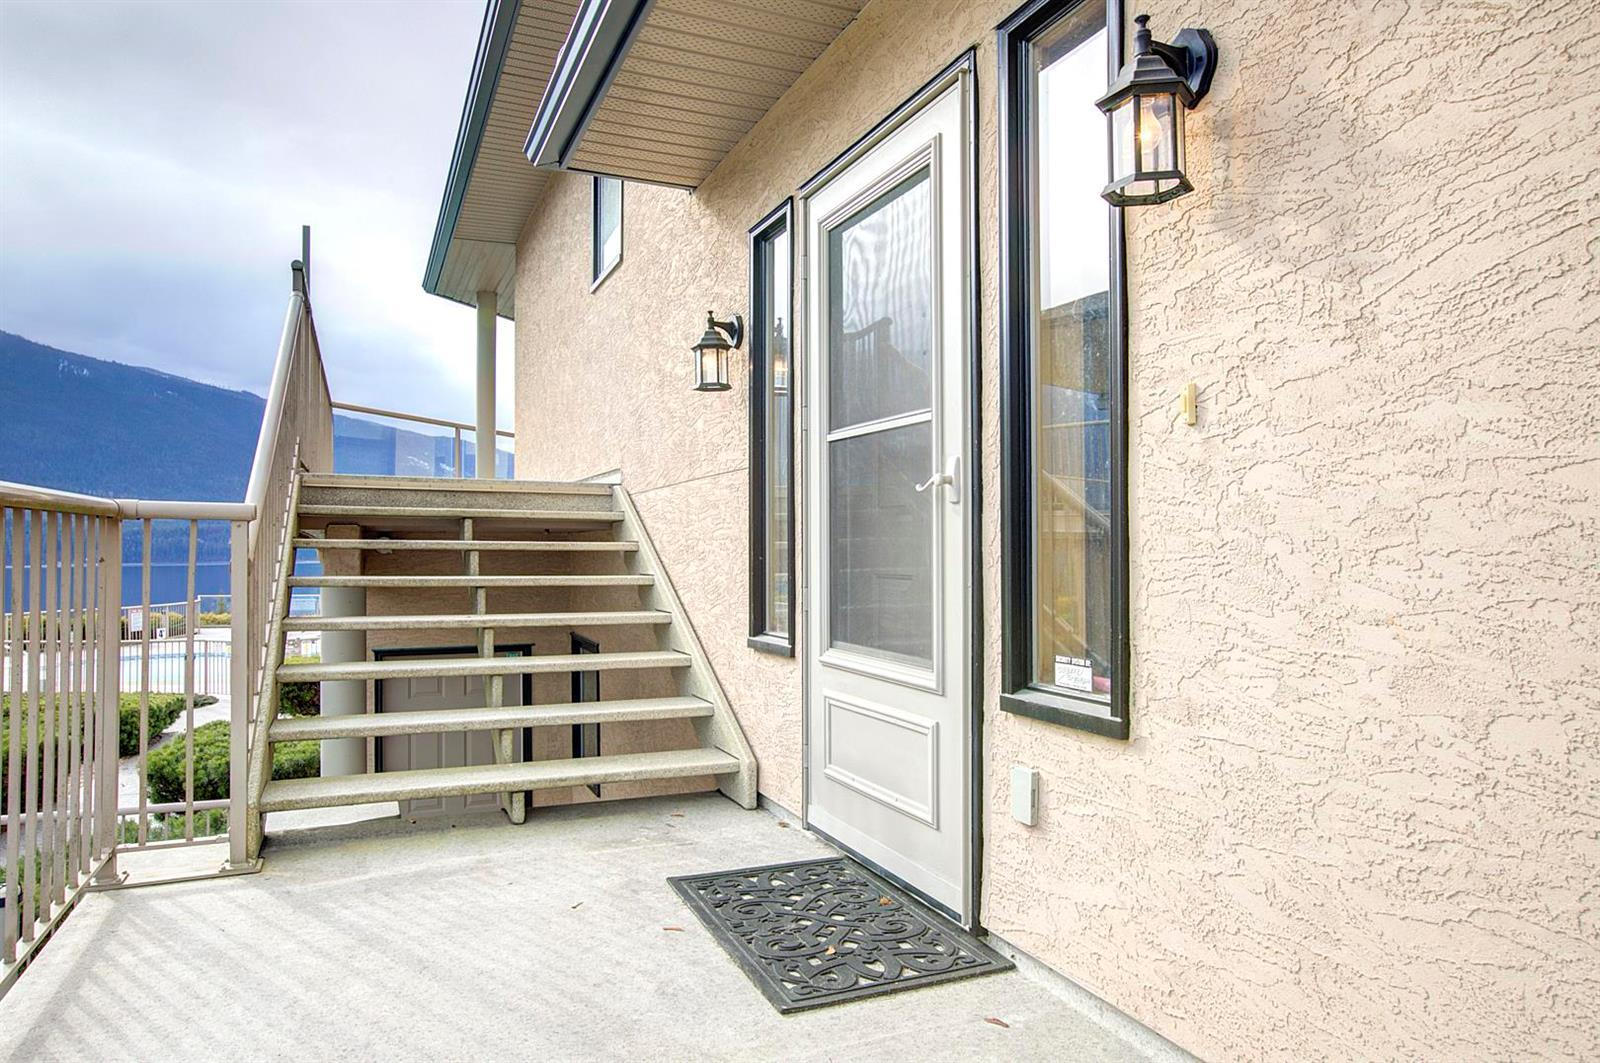 #203 3473 Lakeview Place,, Enderby, British Columbia  V0E 1V5 - Photo 9 - 10229003